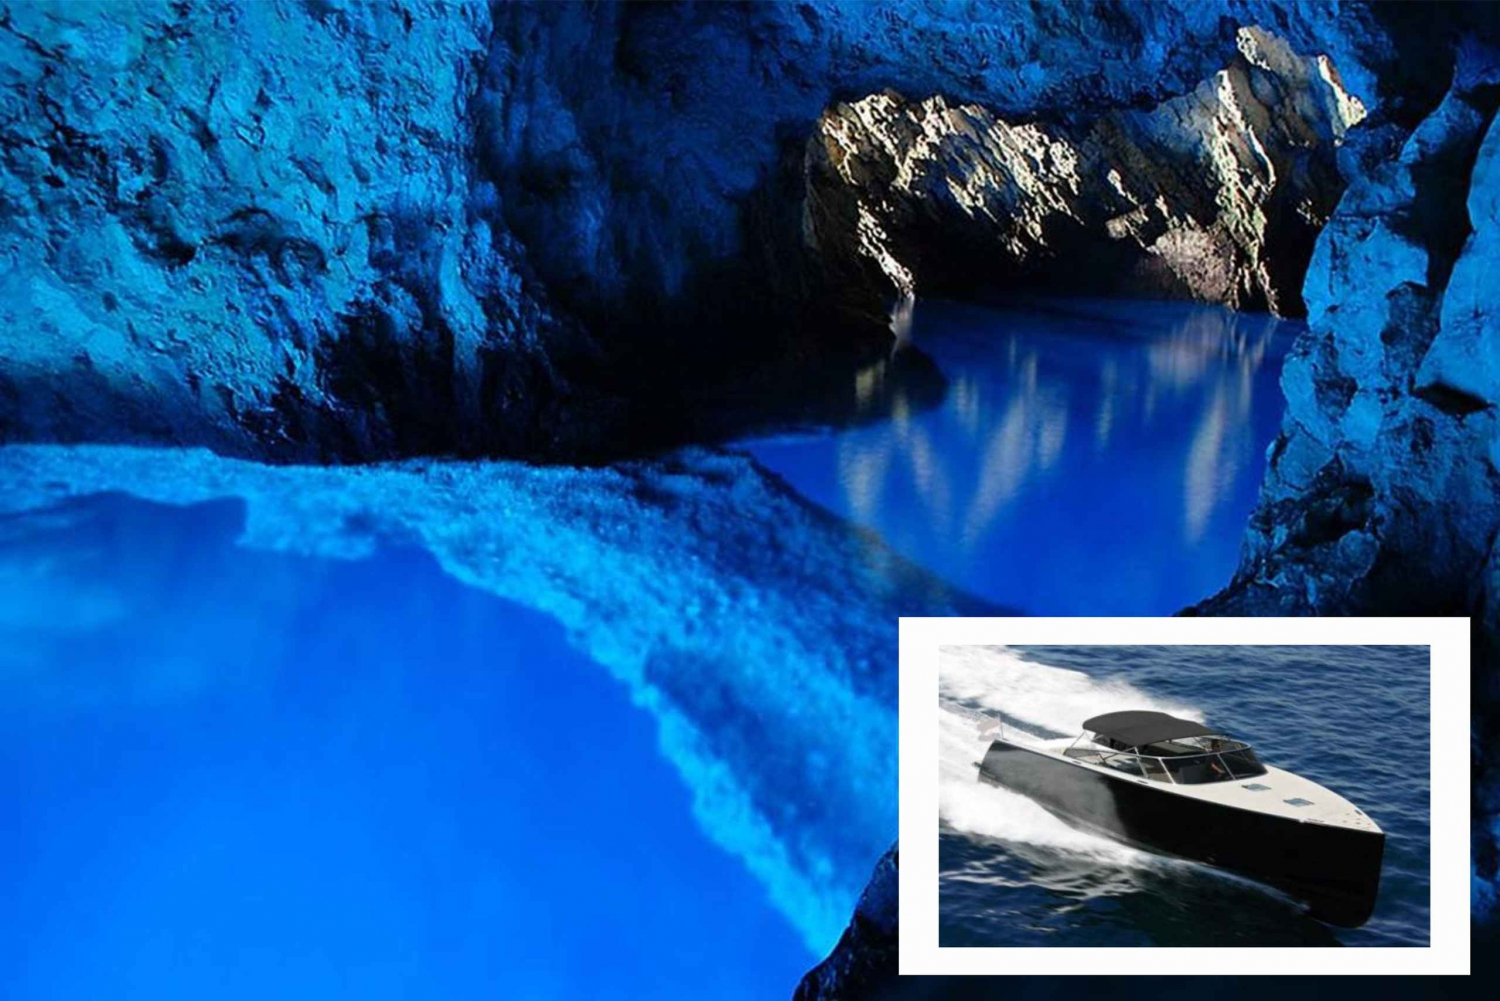 Blue Cave Luxury Boat Tour: Full Day from Split